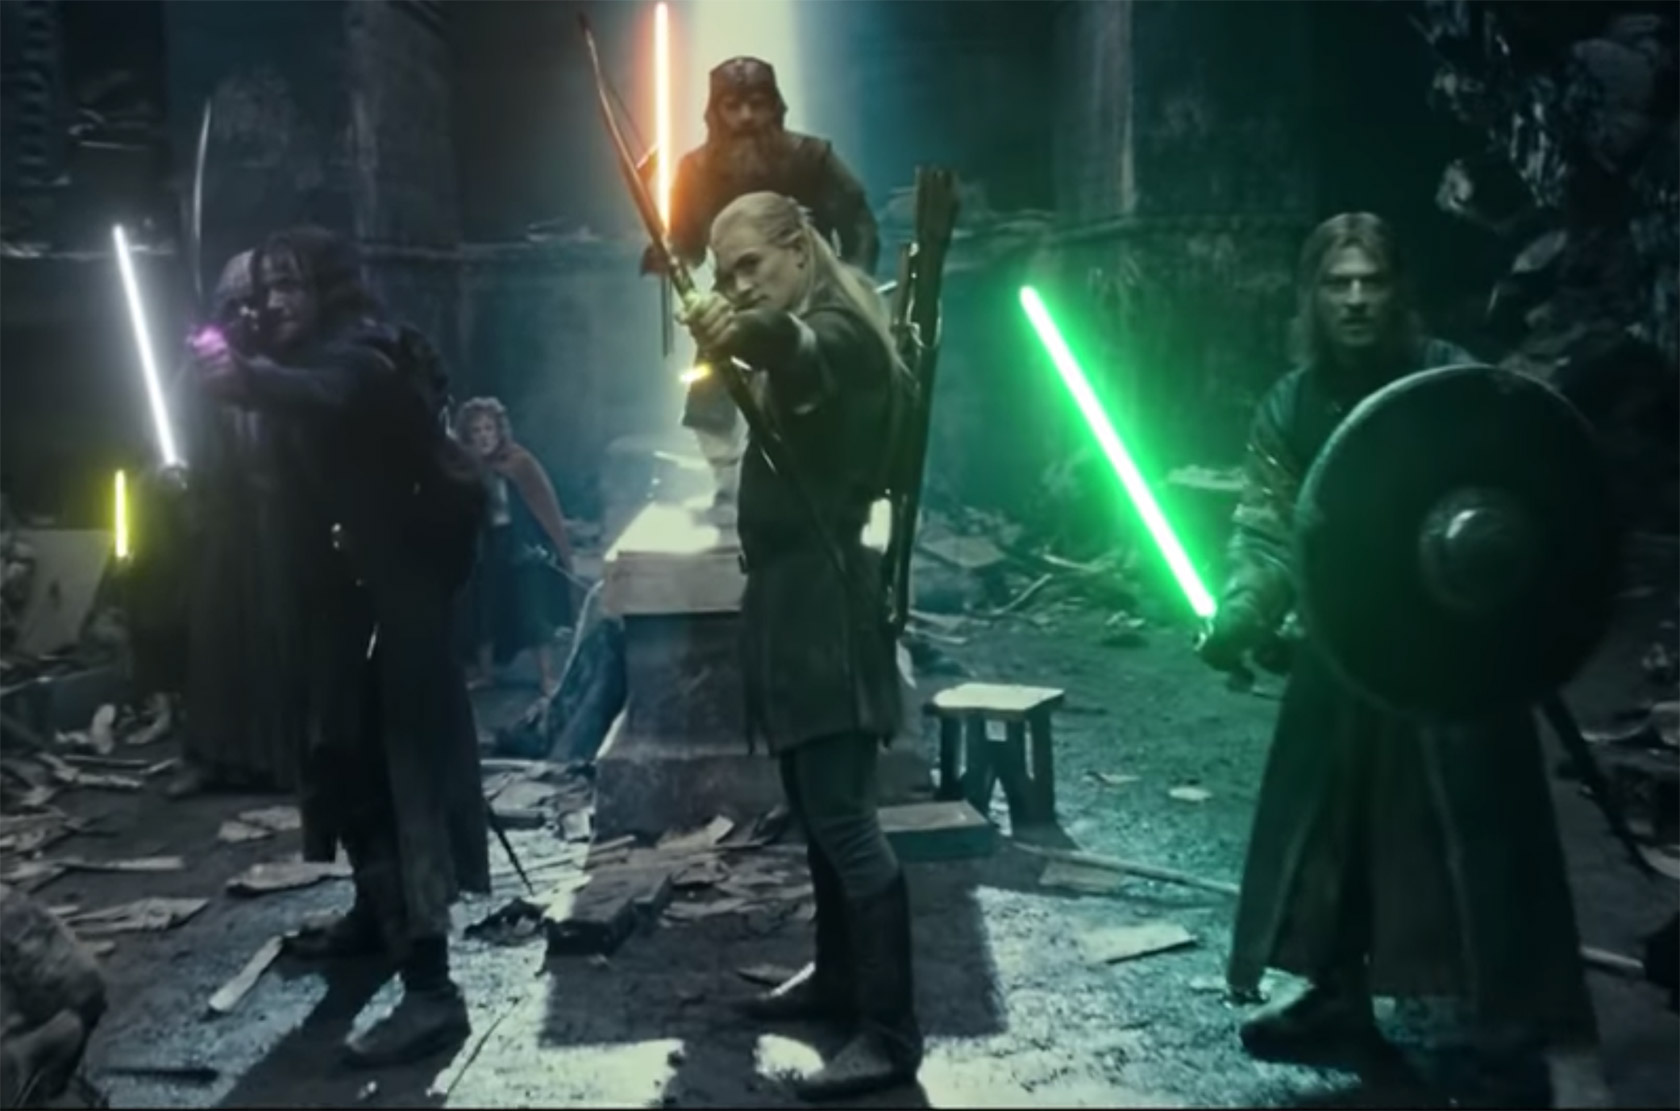 Lord of the Rings Lightsabers